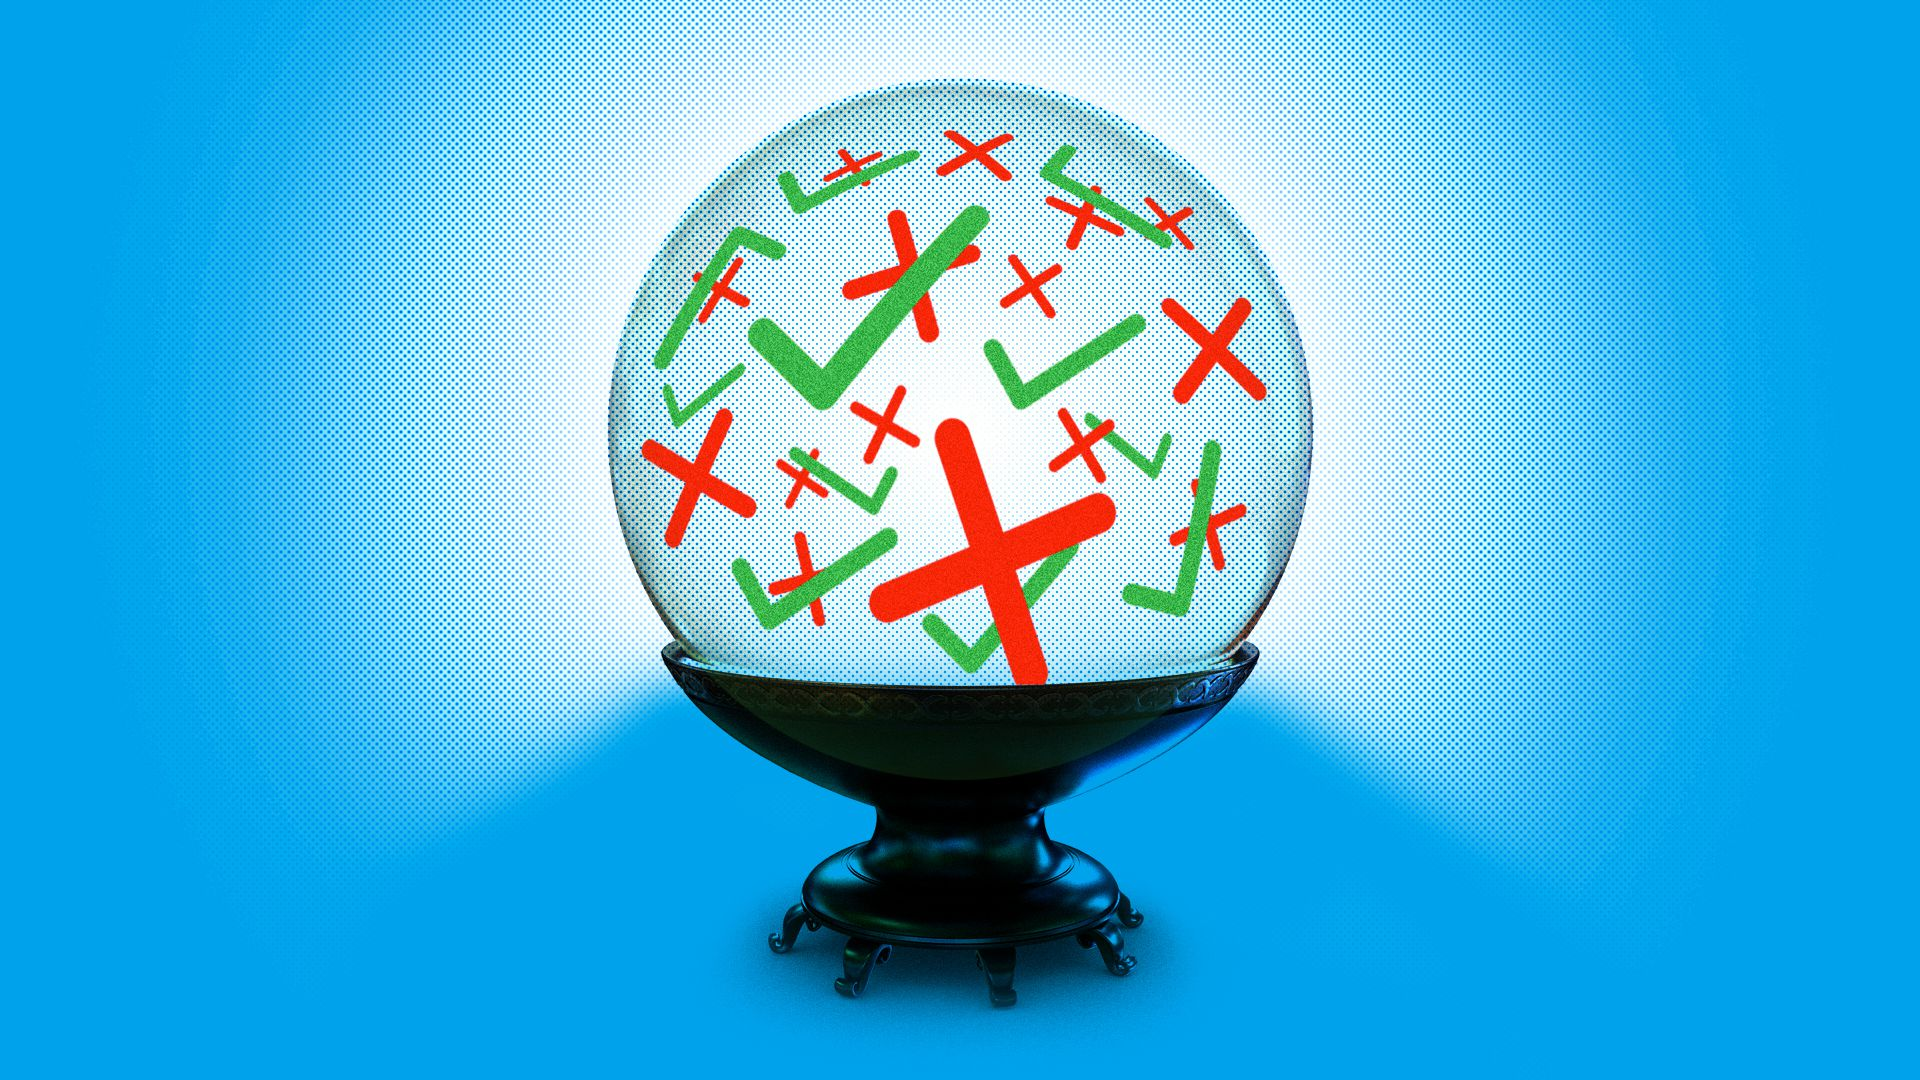 Crystal ball illustration for column on energy predictions